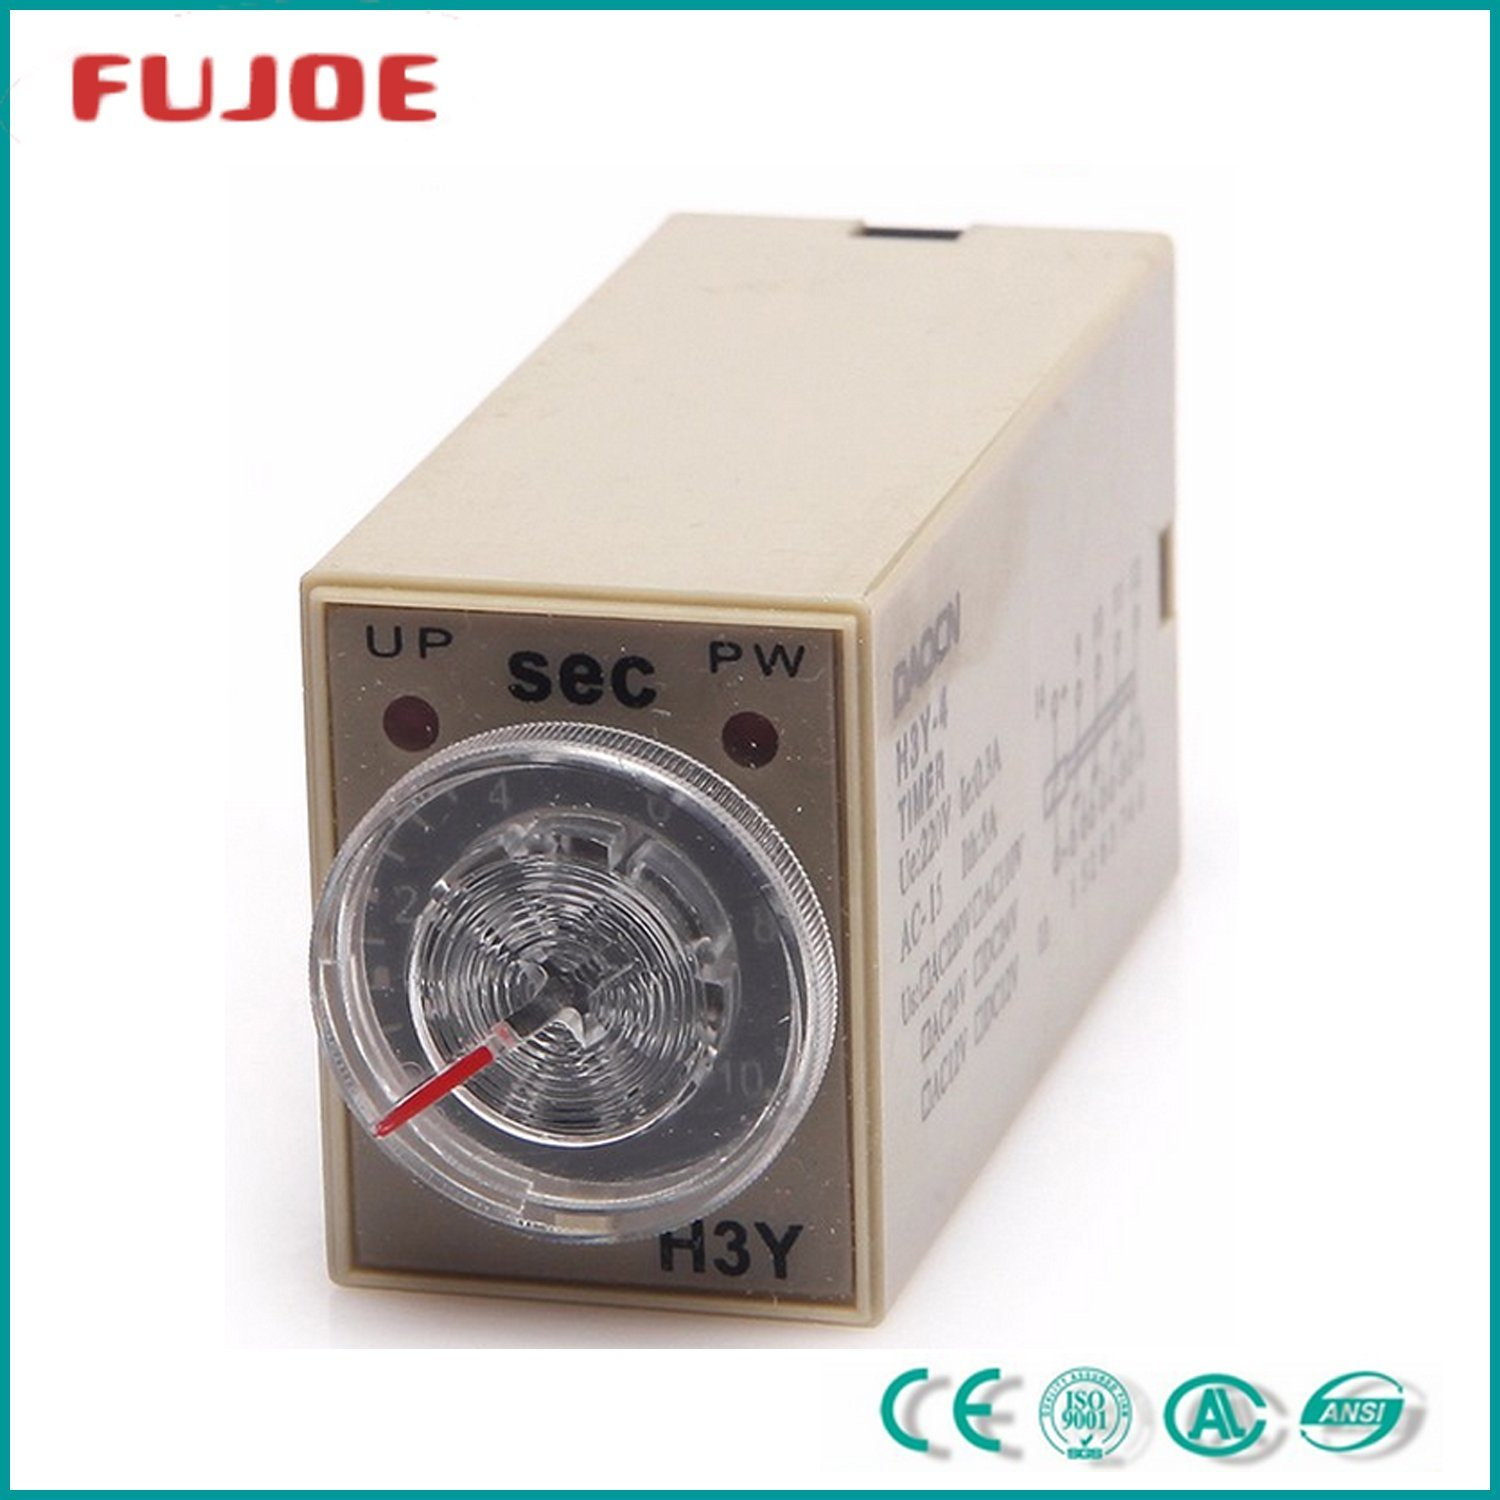 New Innovative Product Time Delay Relay 220V H3y-2 110VAC